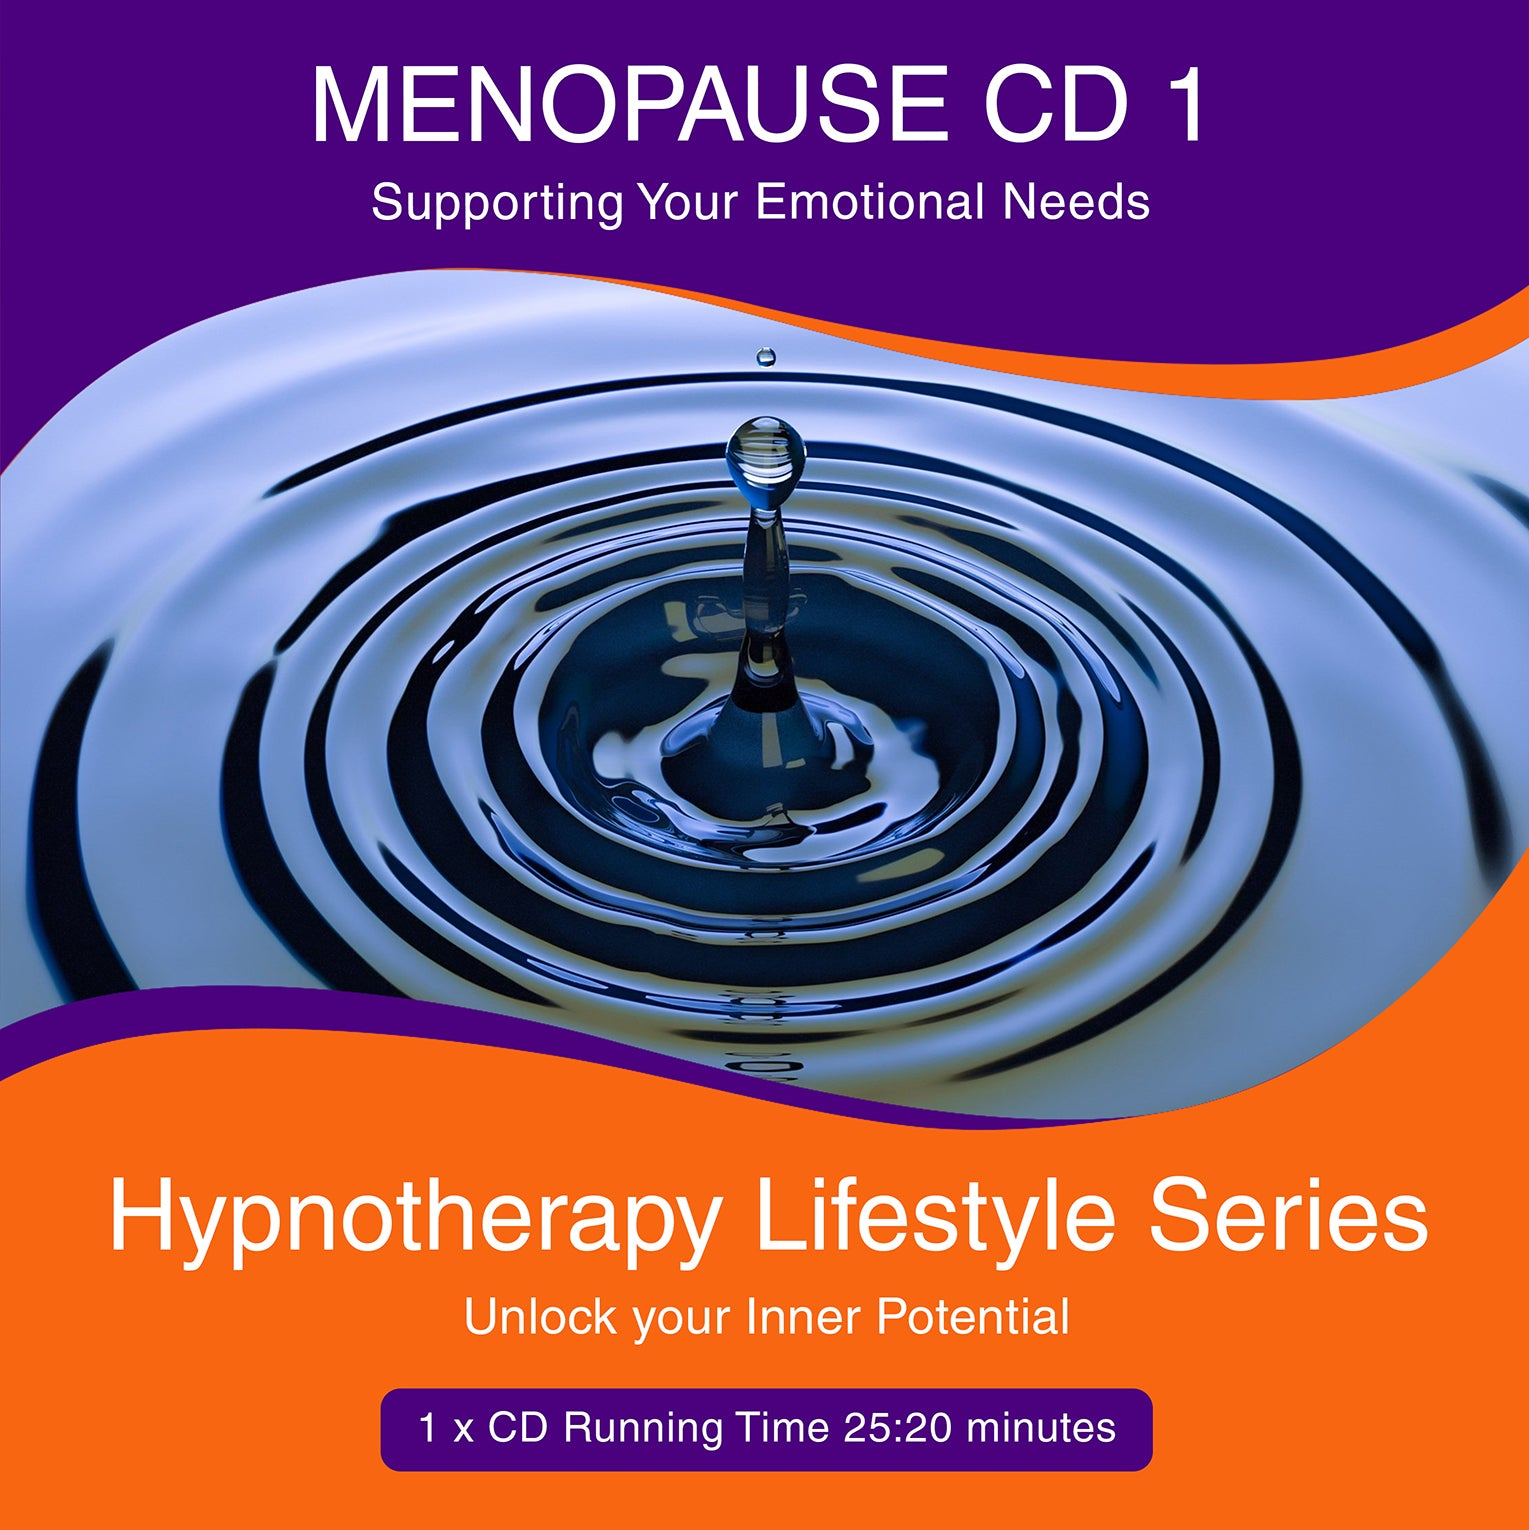 Menopause CD 1 - Supporting your emotional needs